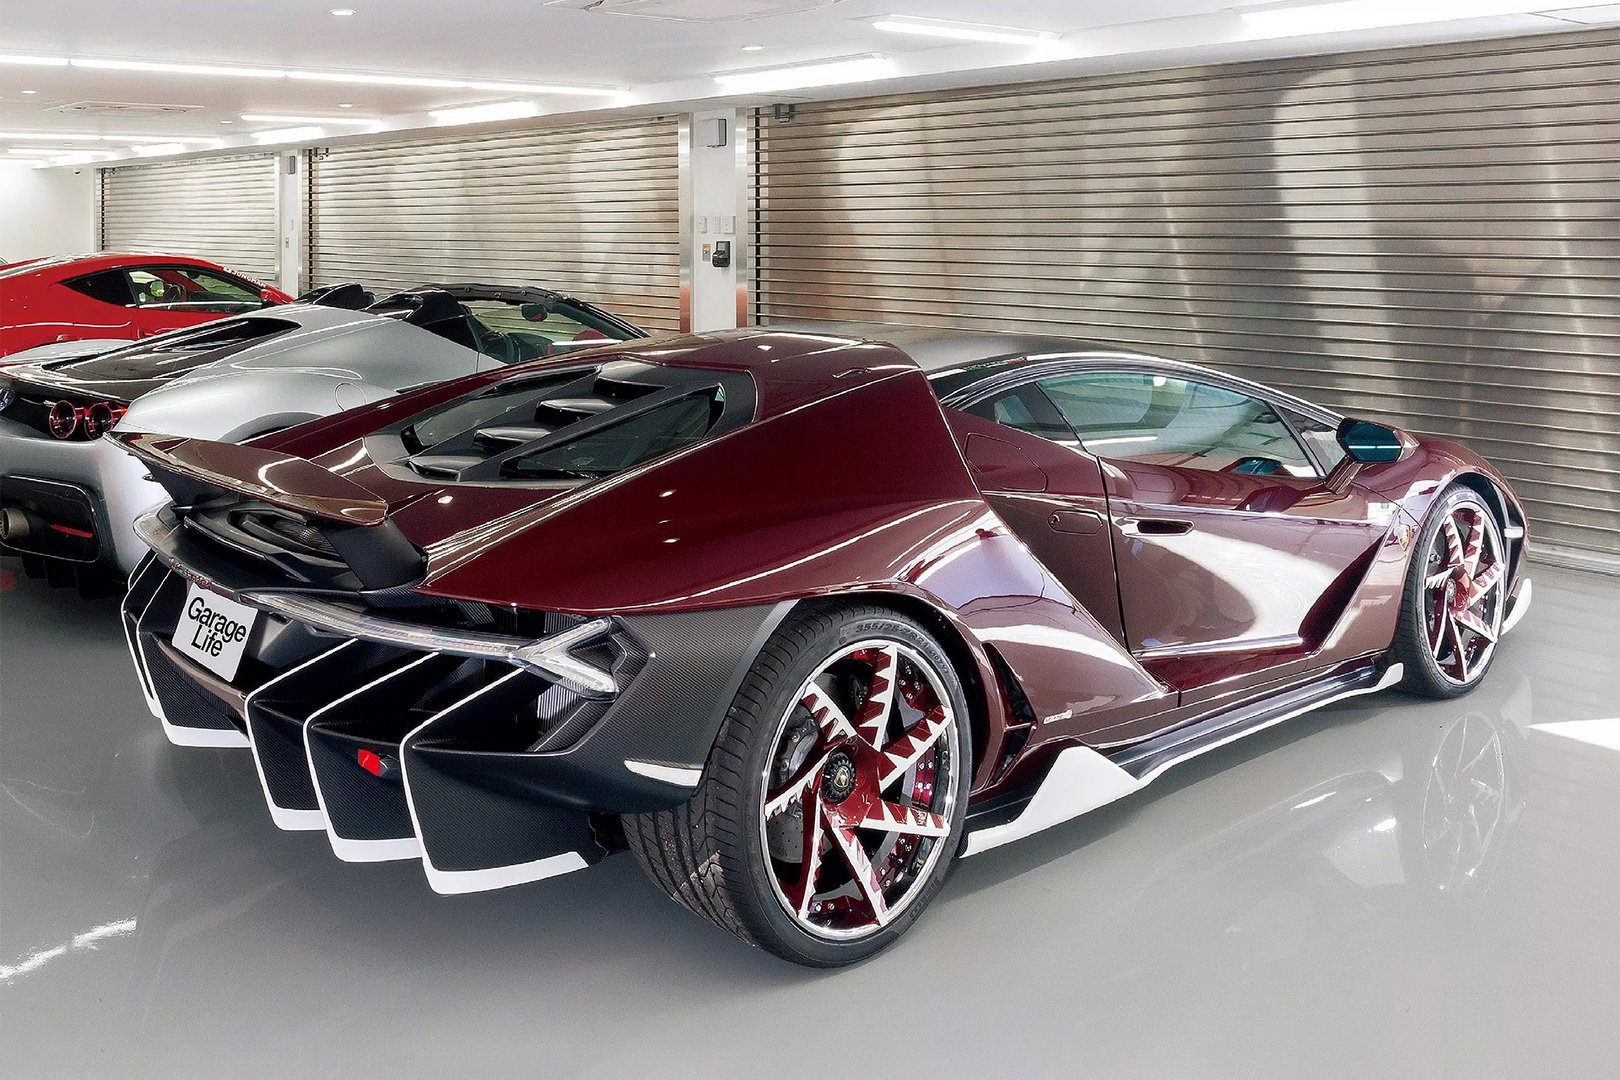 Lamborghini_Centenario_Forgiato_Wheels_0003